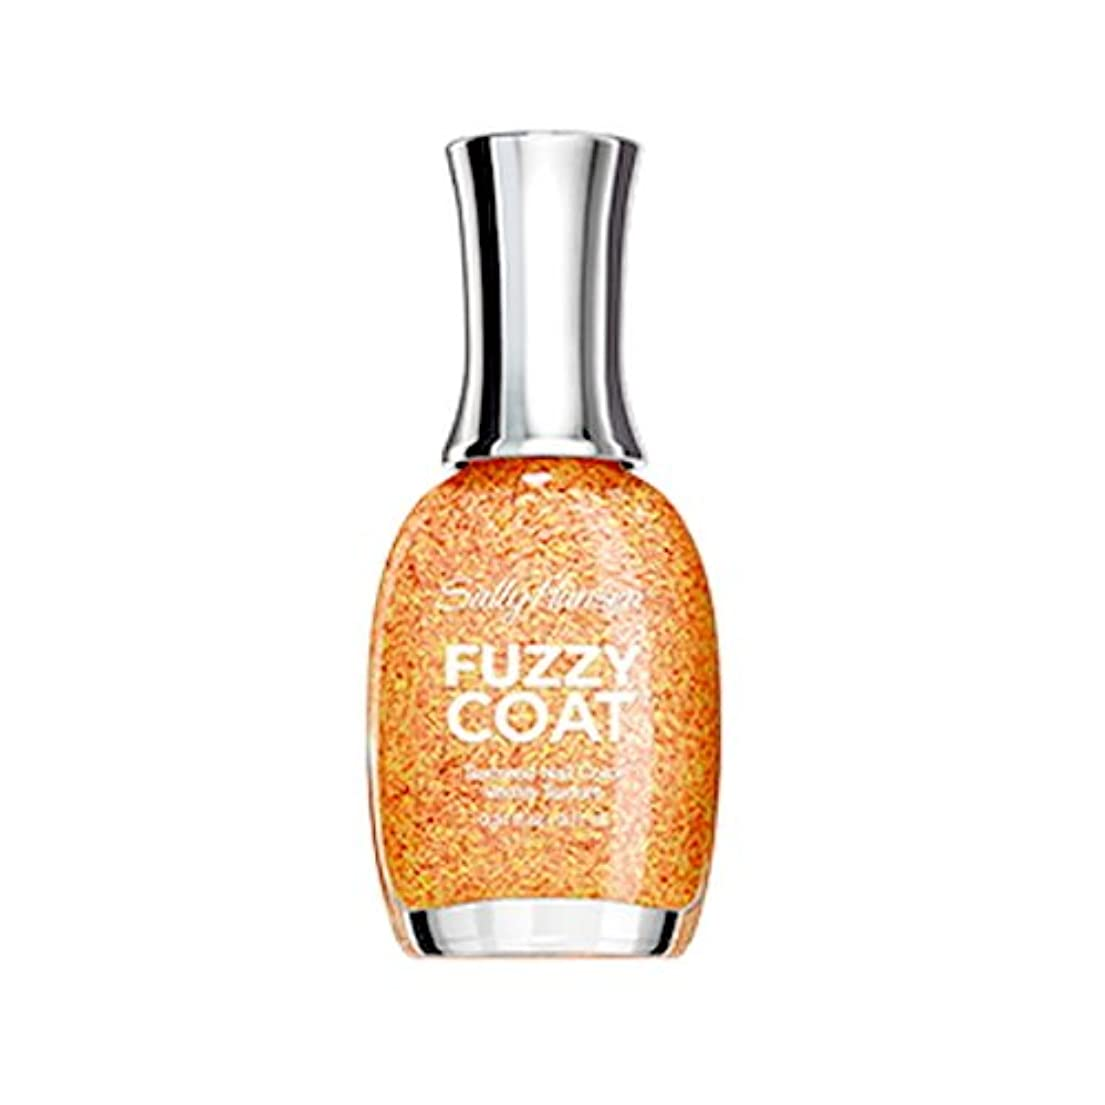 リーンジャングルくるみ(3 Pack) SALLY HANSEN Fuzzy Coat Special Effect Textured Nail Color - Peach Fuzz (並行輸入品)